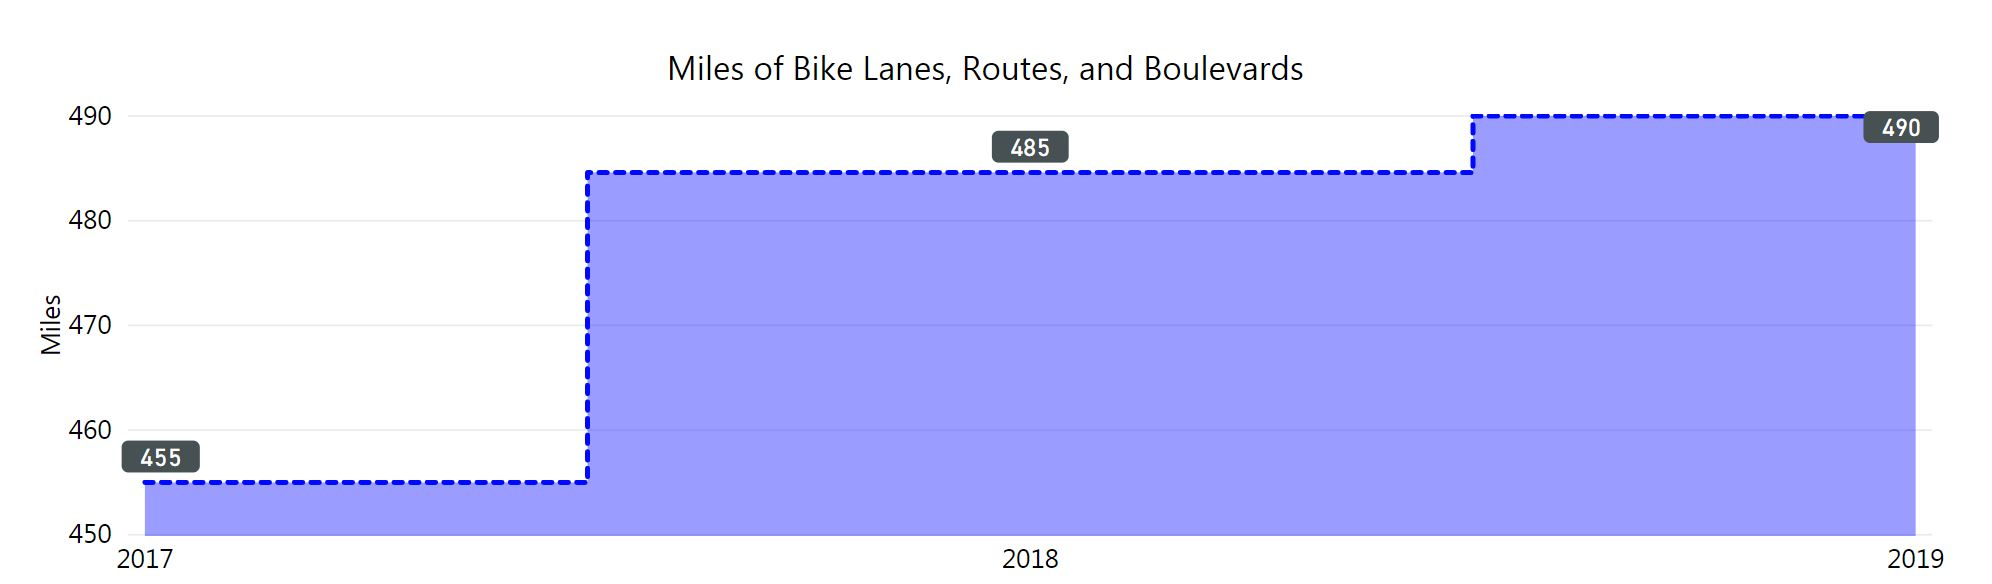 graph of number of bike lanes increasing. in 2019 490 miles